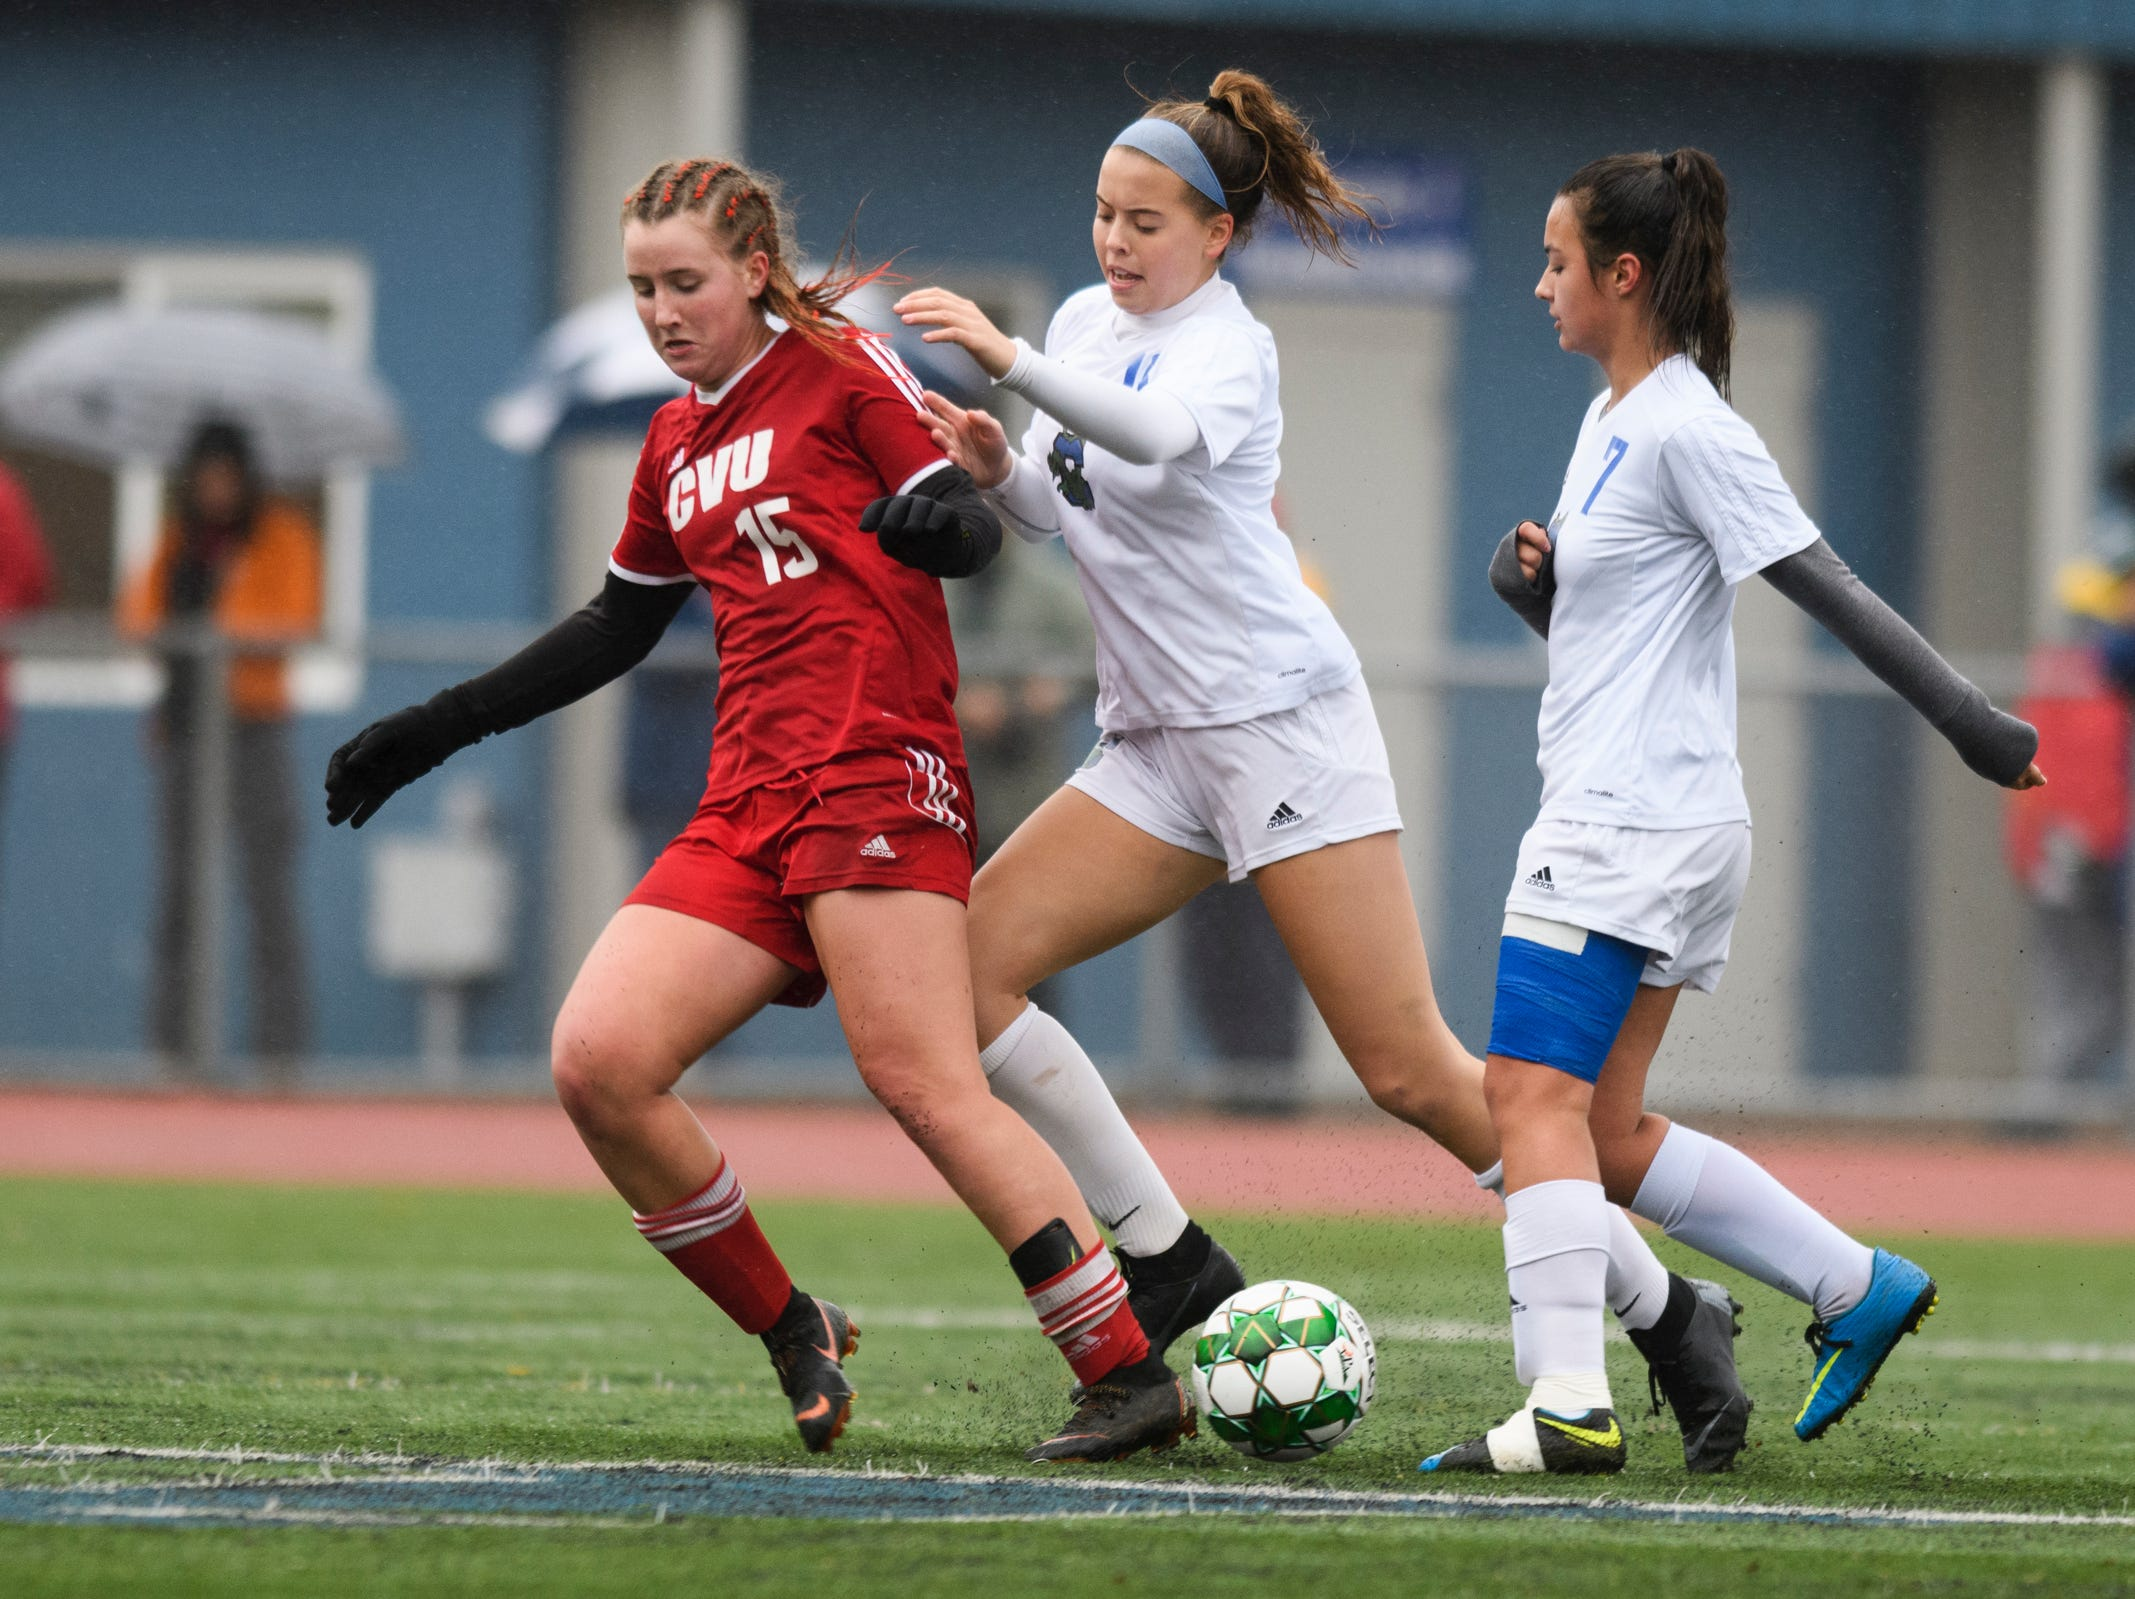 Colchester's Ellie Benoyre (16) battles for the ball with CVU's Olivia Morton (15) during the division I girls soccer championship game between the Colchester Lakers and the Champlain Valley Union Redhawks at Buck Hard Field on Saturday morning November 3, 2018 in Burlington.